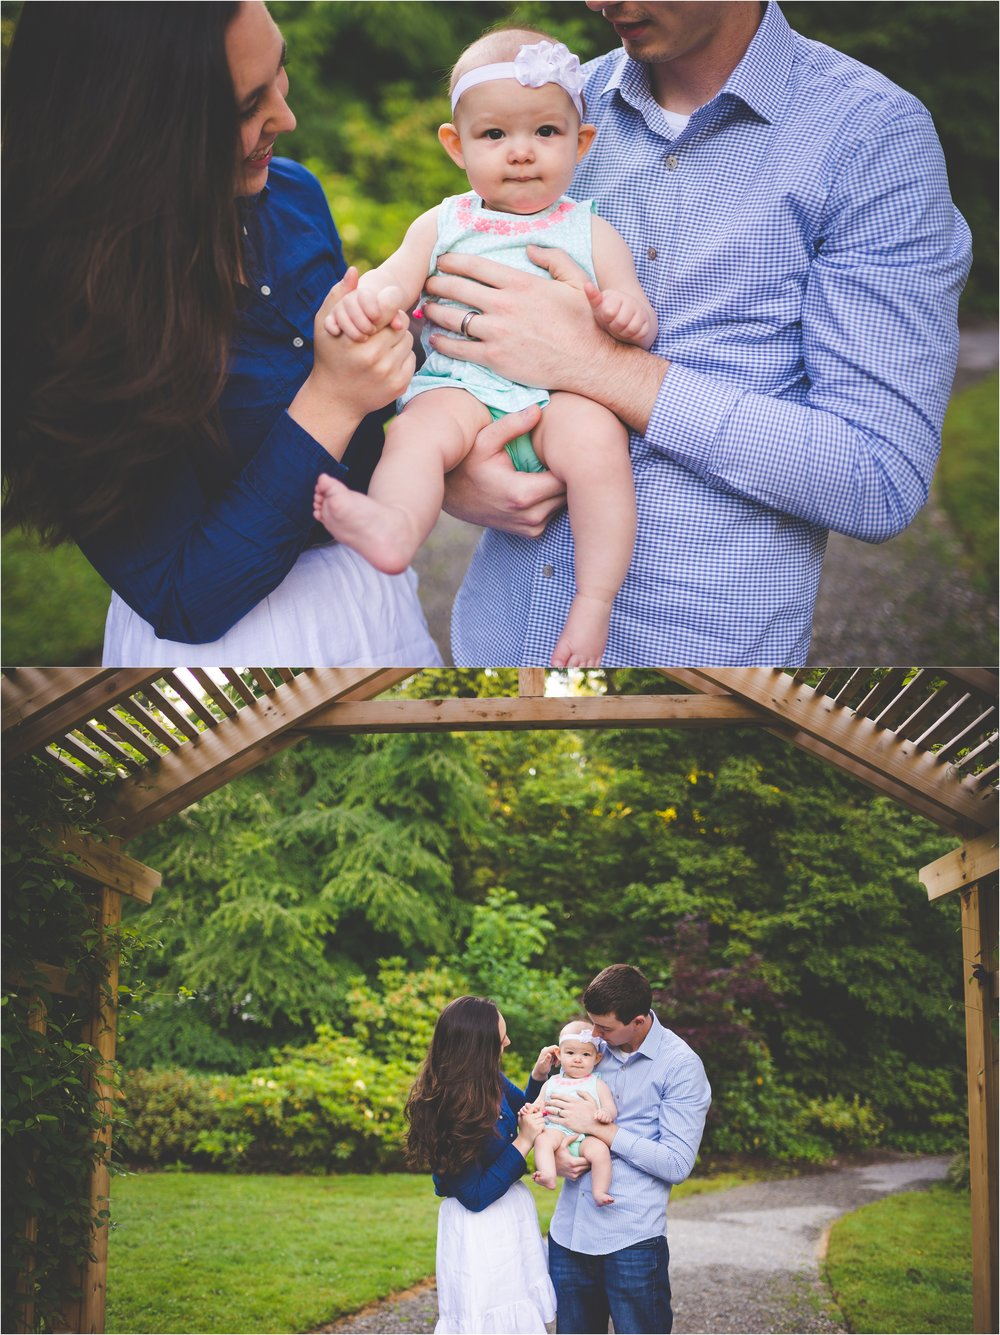 priest-point-park-olympia-wa-family-session-jannicka-mayte-anchorage-alaska-seattle-washington-family-photographer_0005.jpg